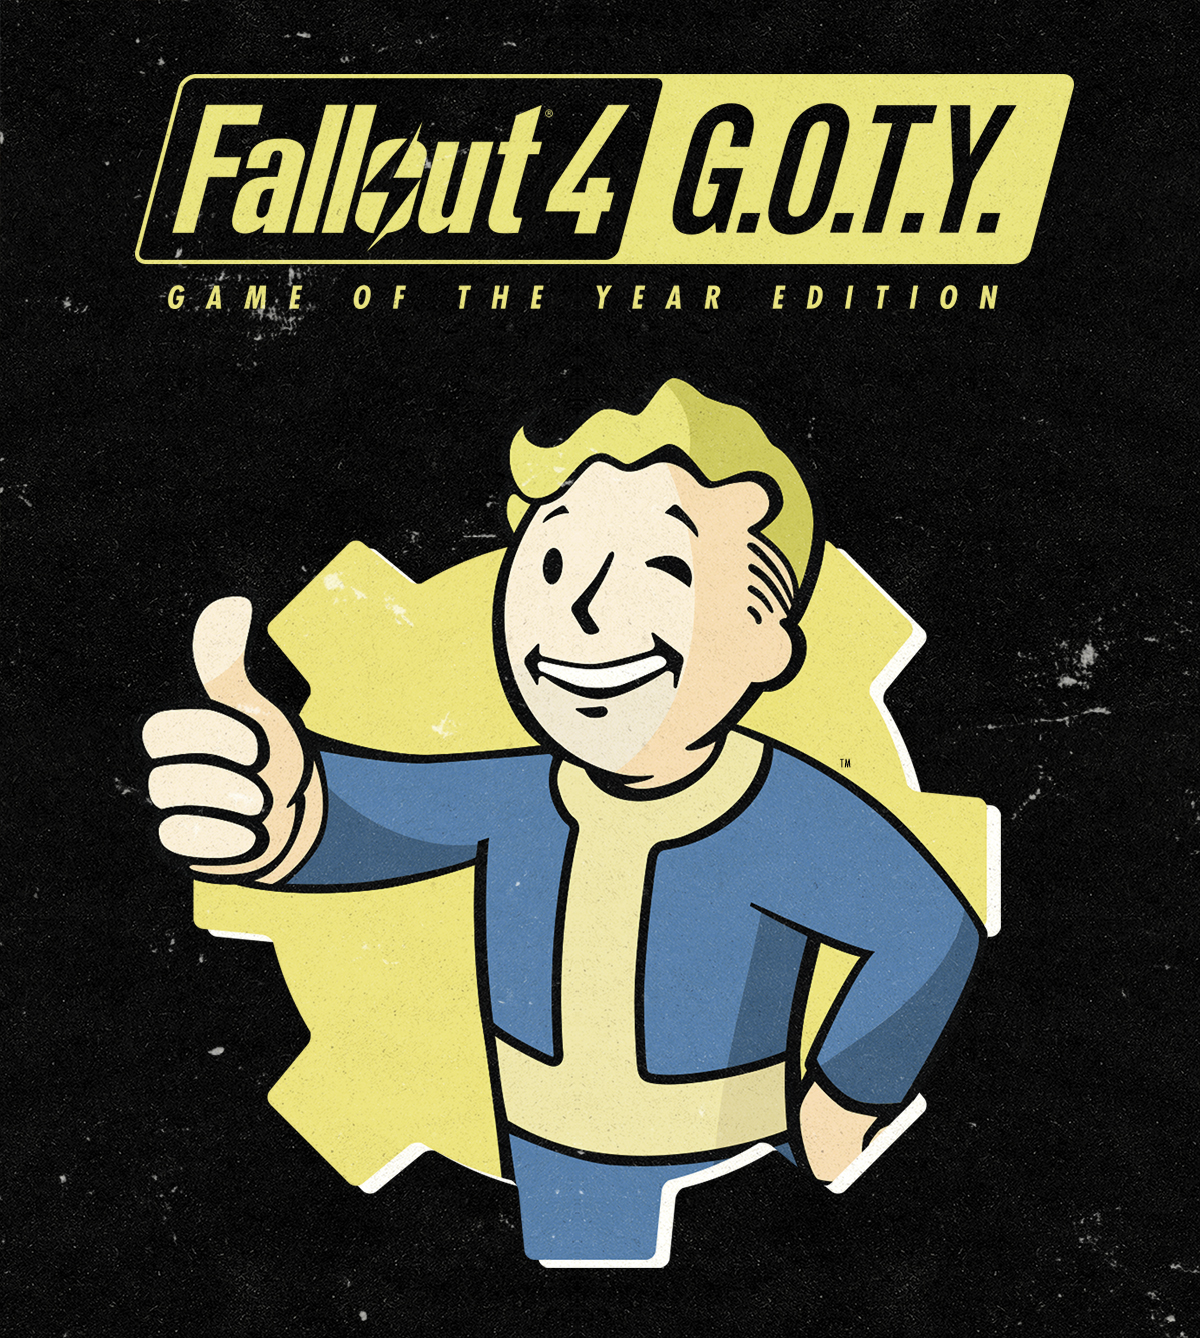 Fallout 4 Game of the Year Edition | PlayStation 4 | GameStop